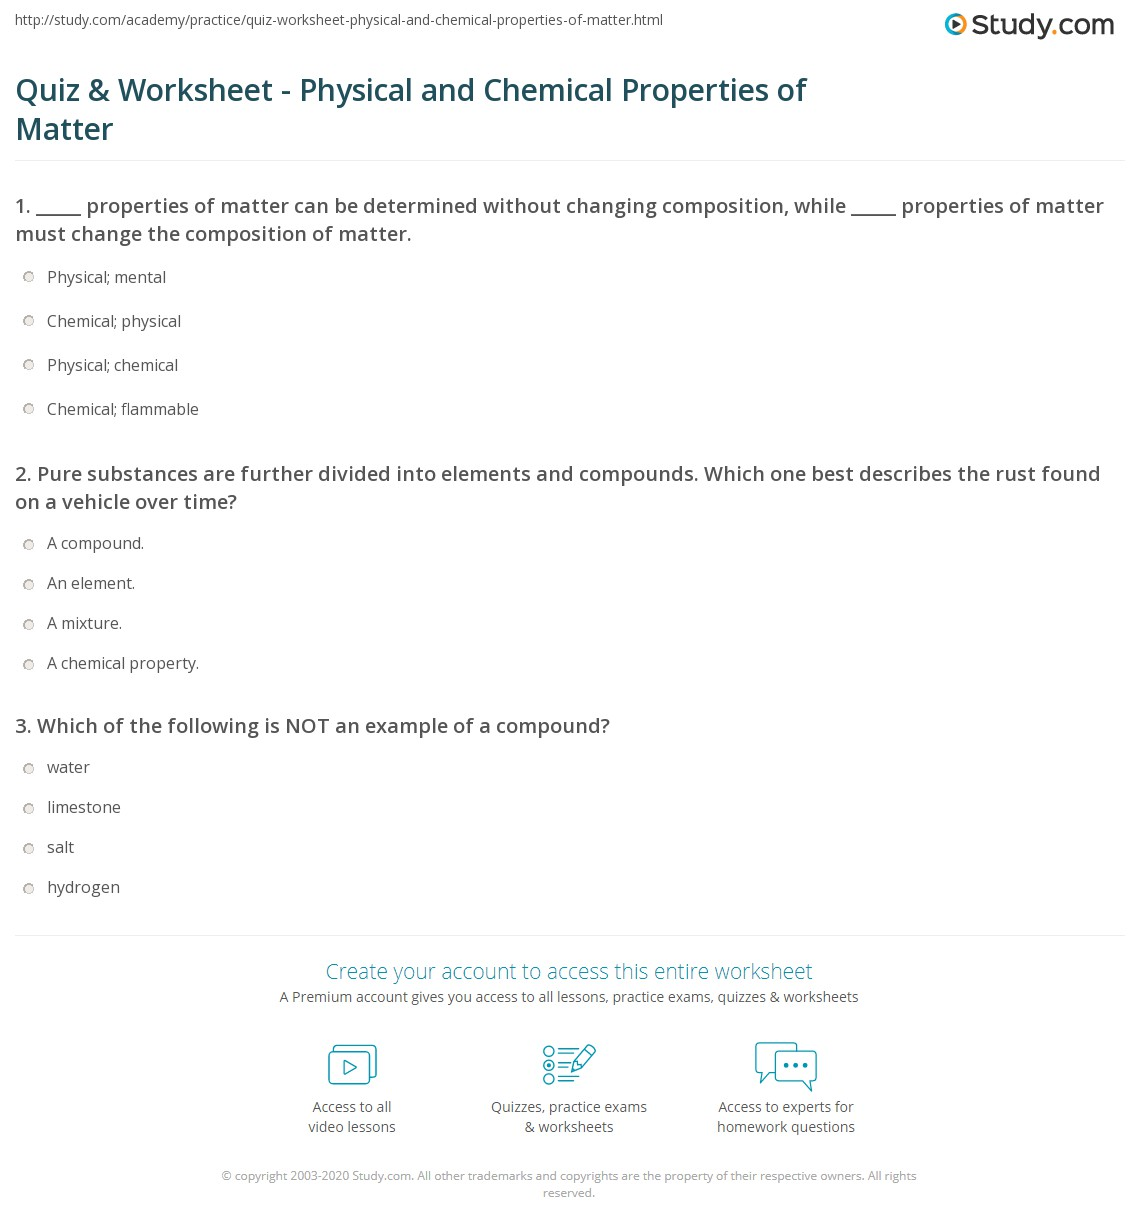 {Quiz Worksheet Physical and Chemical Properties of Matter – Physical and Chemical Properties of Matter Worksheet